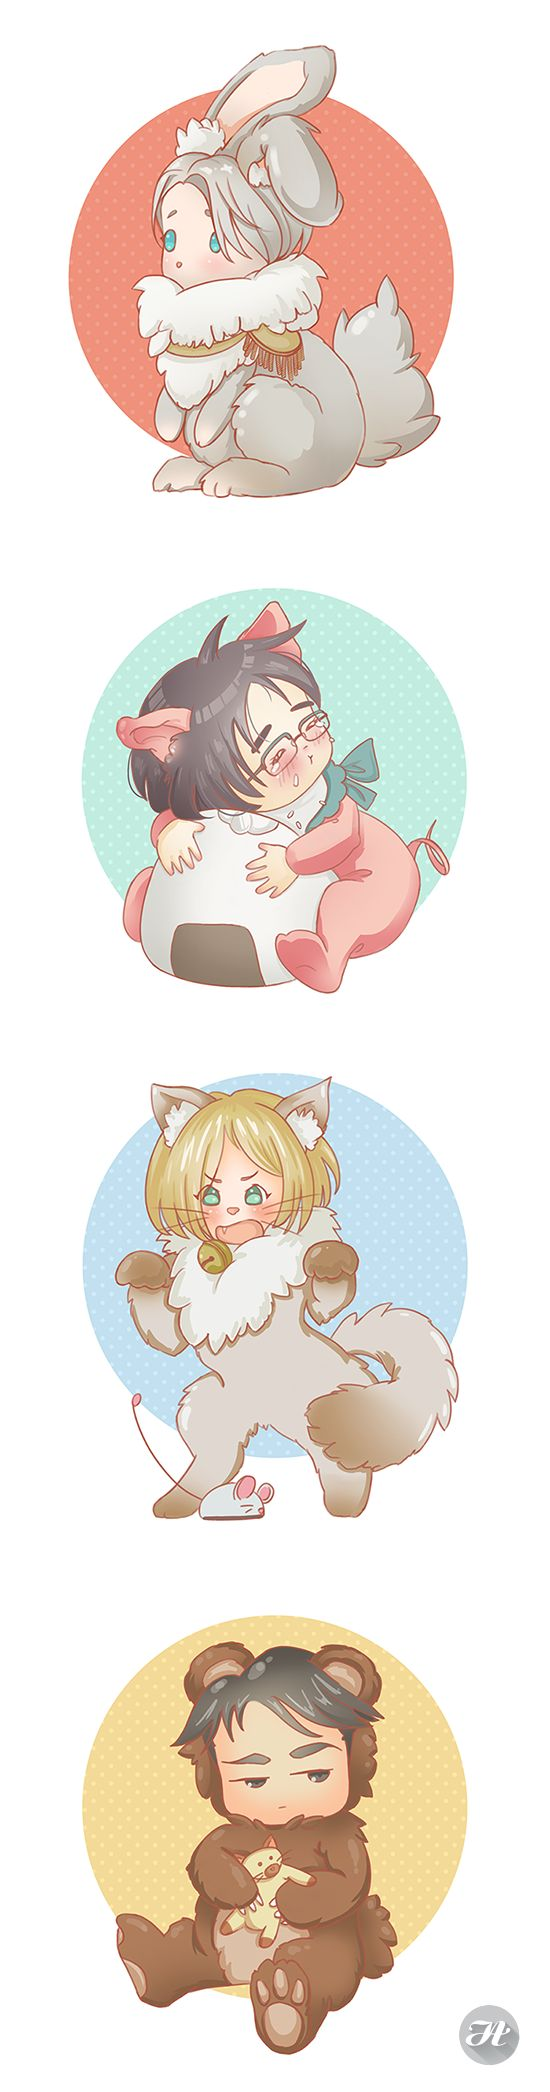 Furry on Ice!  Happy Anniversary Yuri on Ice!  yurionice yuurikatsuki victornikiforov yuriplisetsky yurionicefanart otabekaltin otabae victuuri otayuri otayurio chibi furry furryart furrychibi rabbit bunny neko kitten kitty bear bearhug piggy piggytails katsudon porkcutletbowl onigiri kawaii cuteadorable yaoi yoi